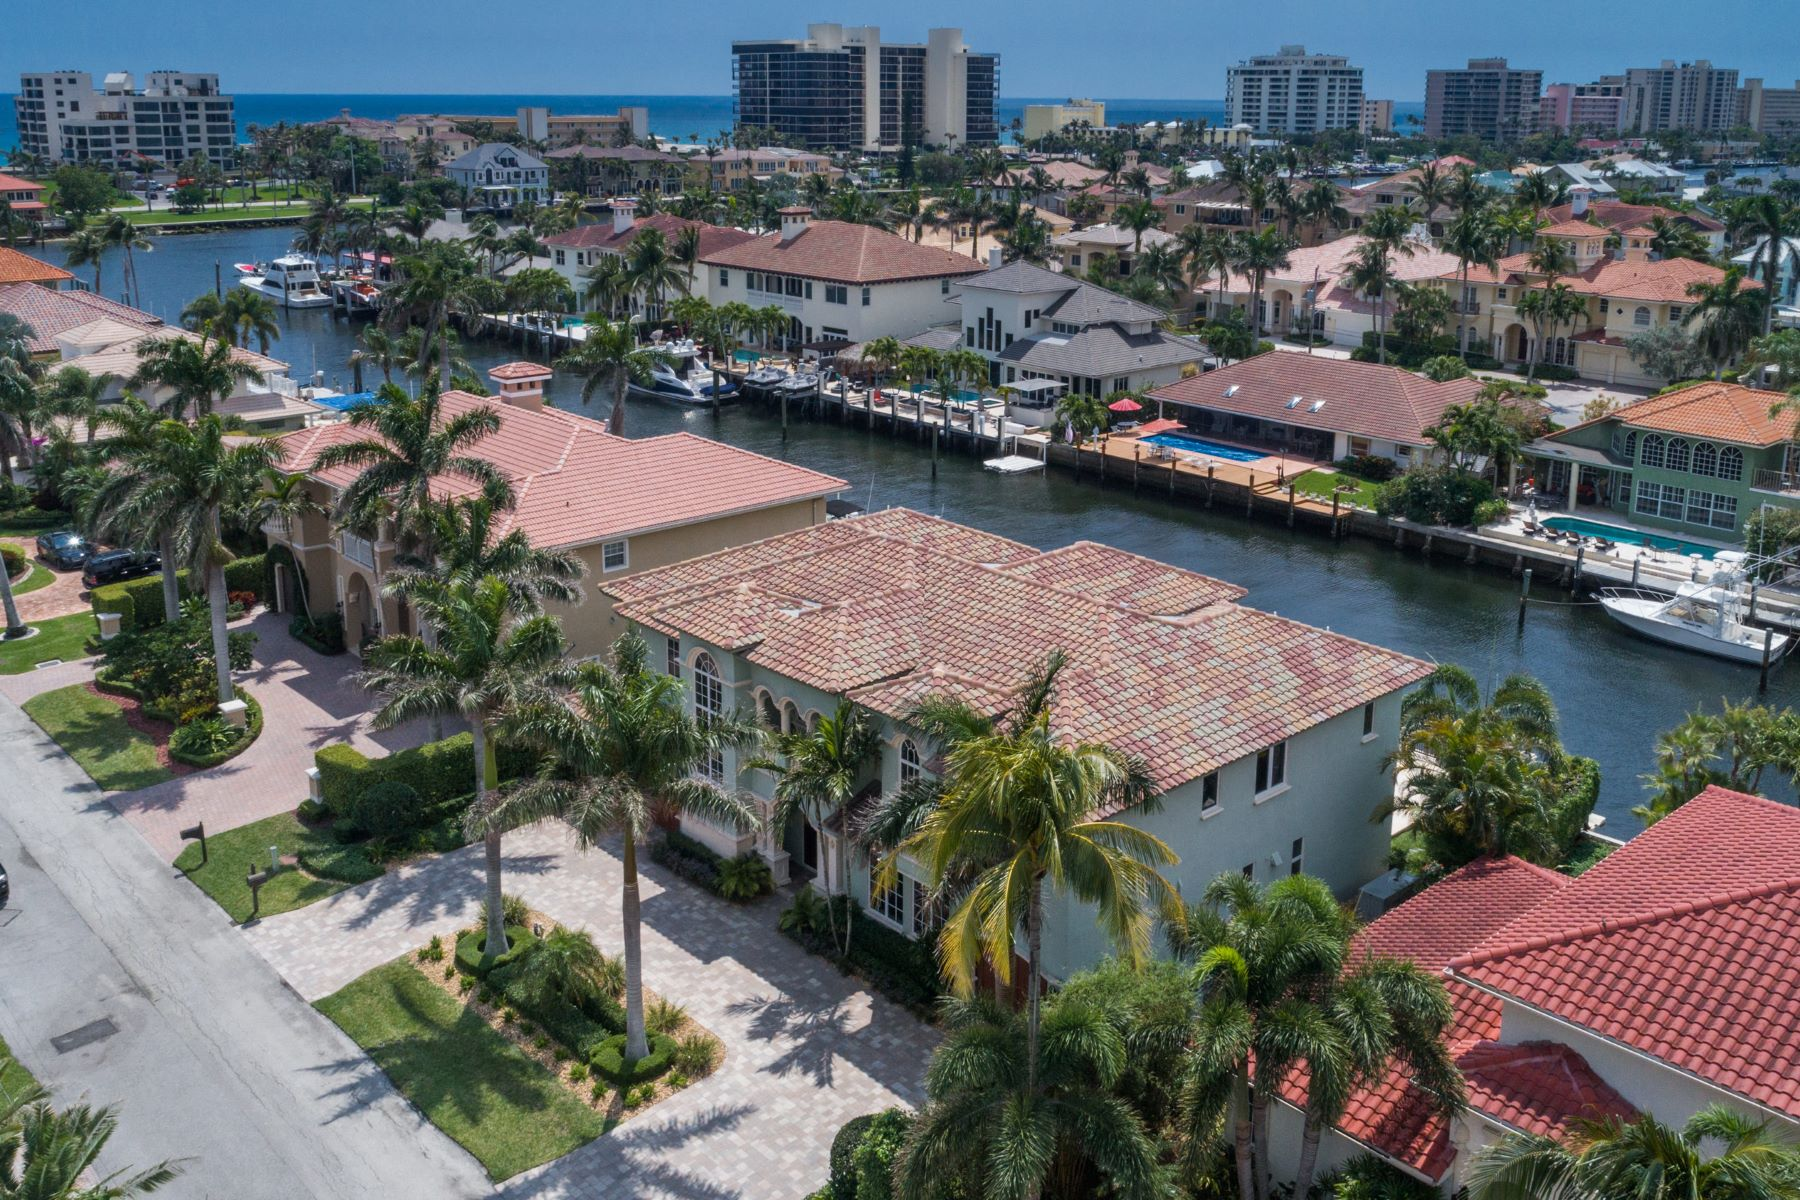 Single Family Home for Active at 936 Hyacinth Drive 936 Hyacinth Drive Delray Beach, Florida 33483 United States